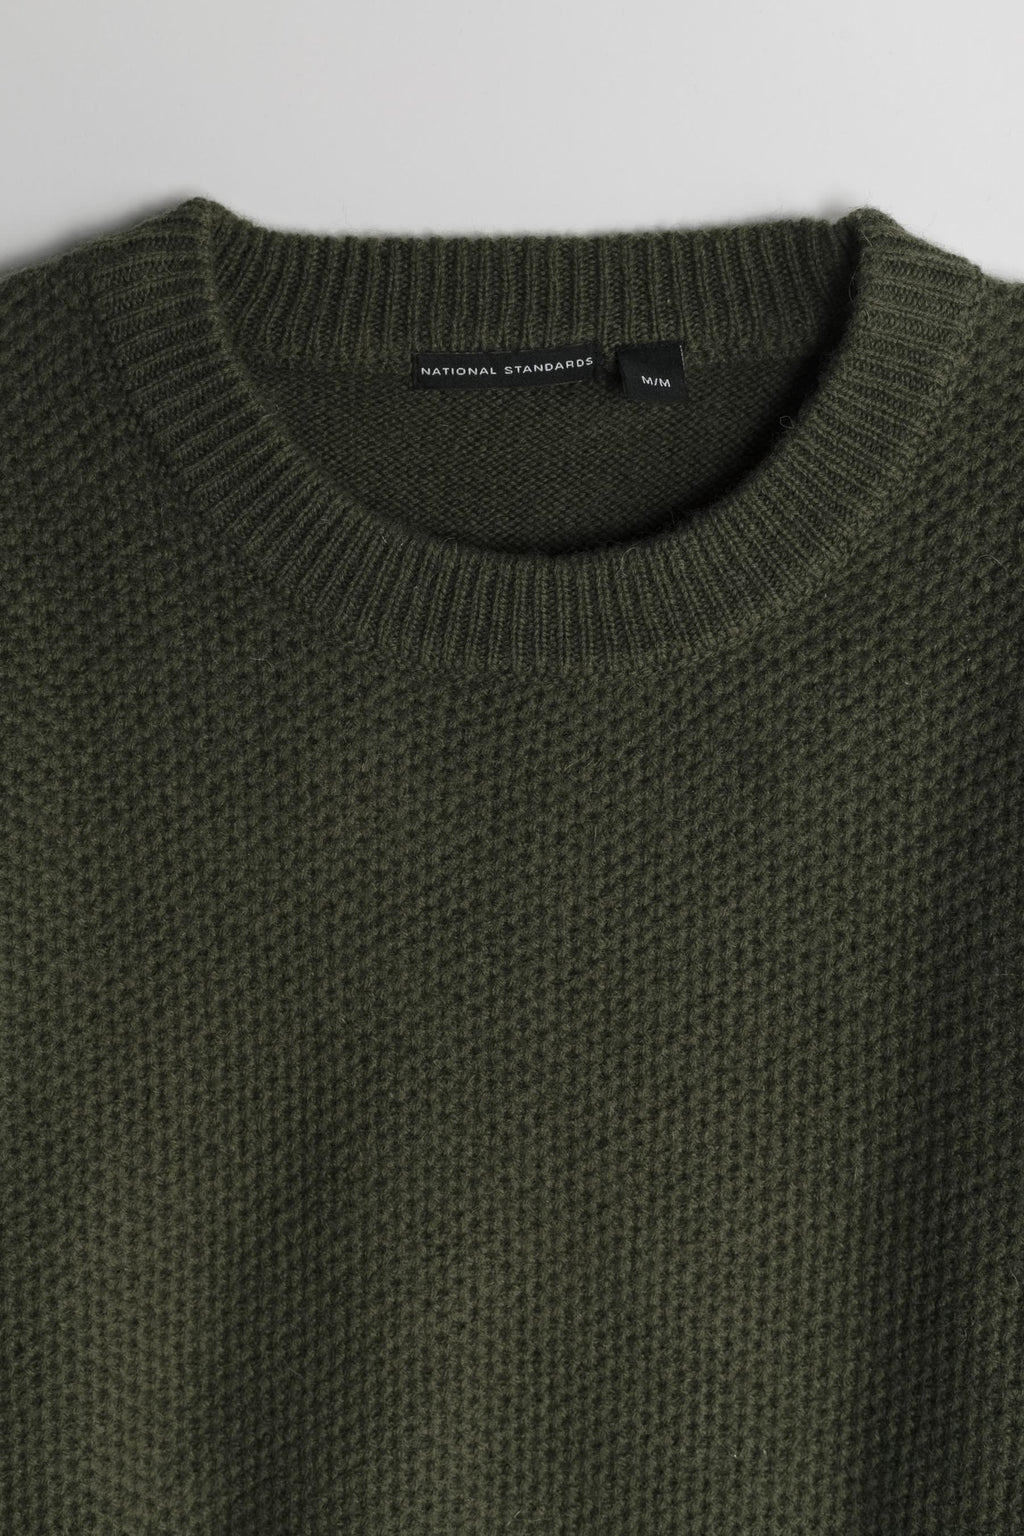 Lambswool Heavy Gauge Crew in Army Green 02